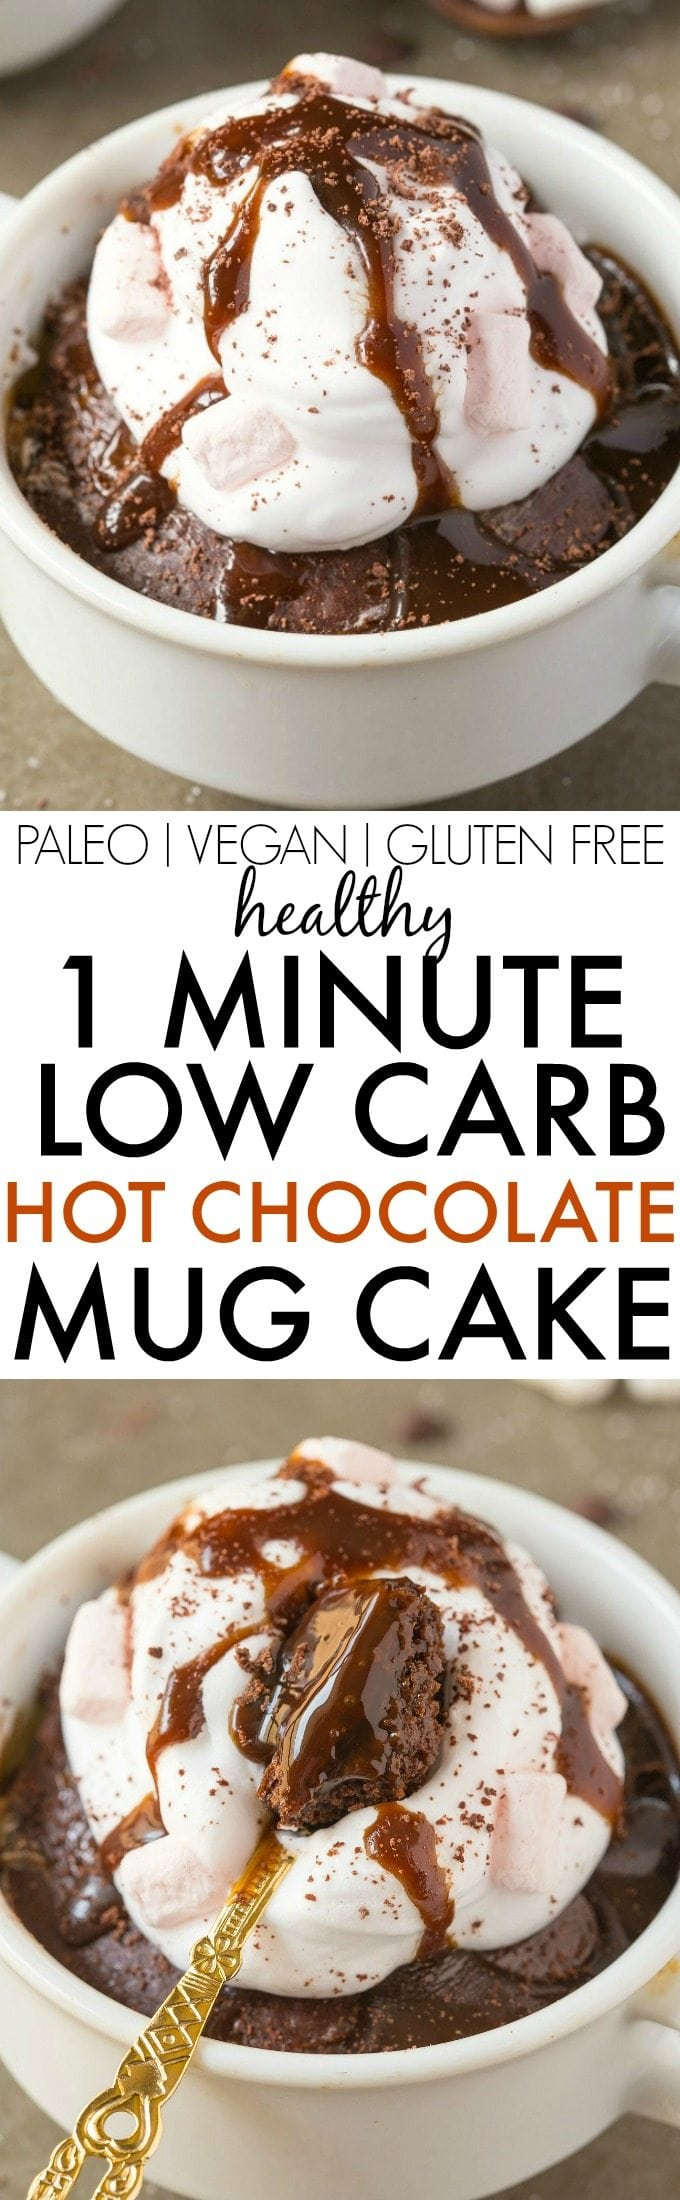 Healthy 1 Minute Low Carb Hot Chocolate Mug Cake